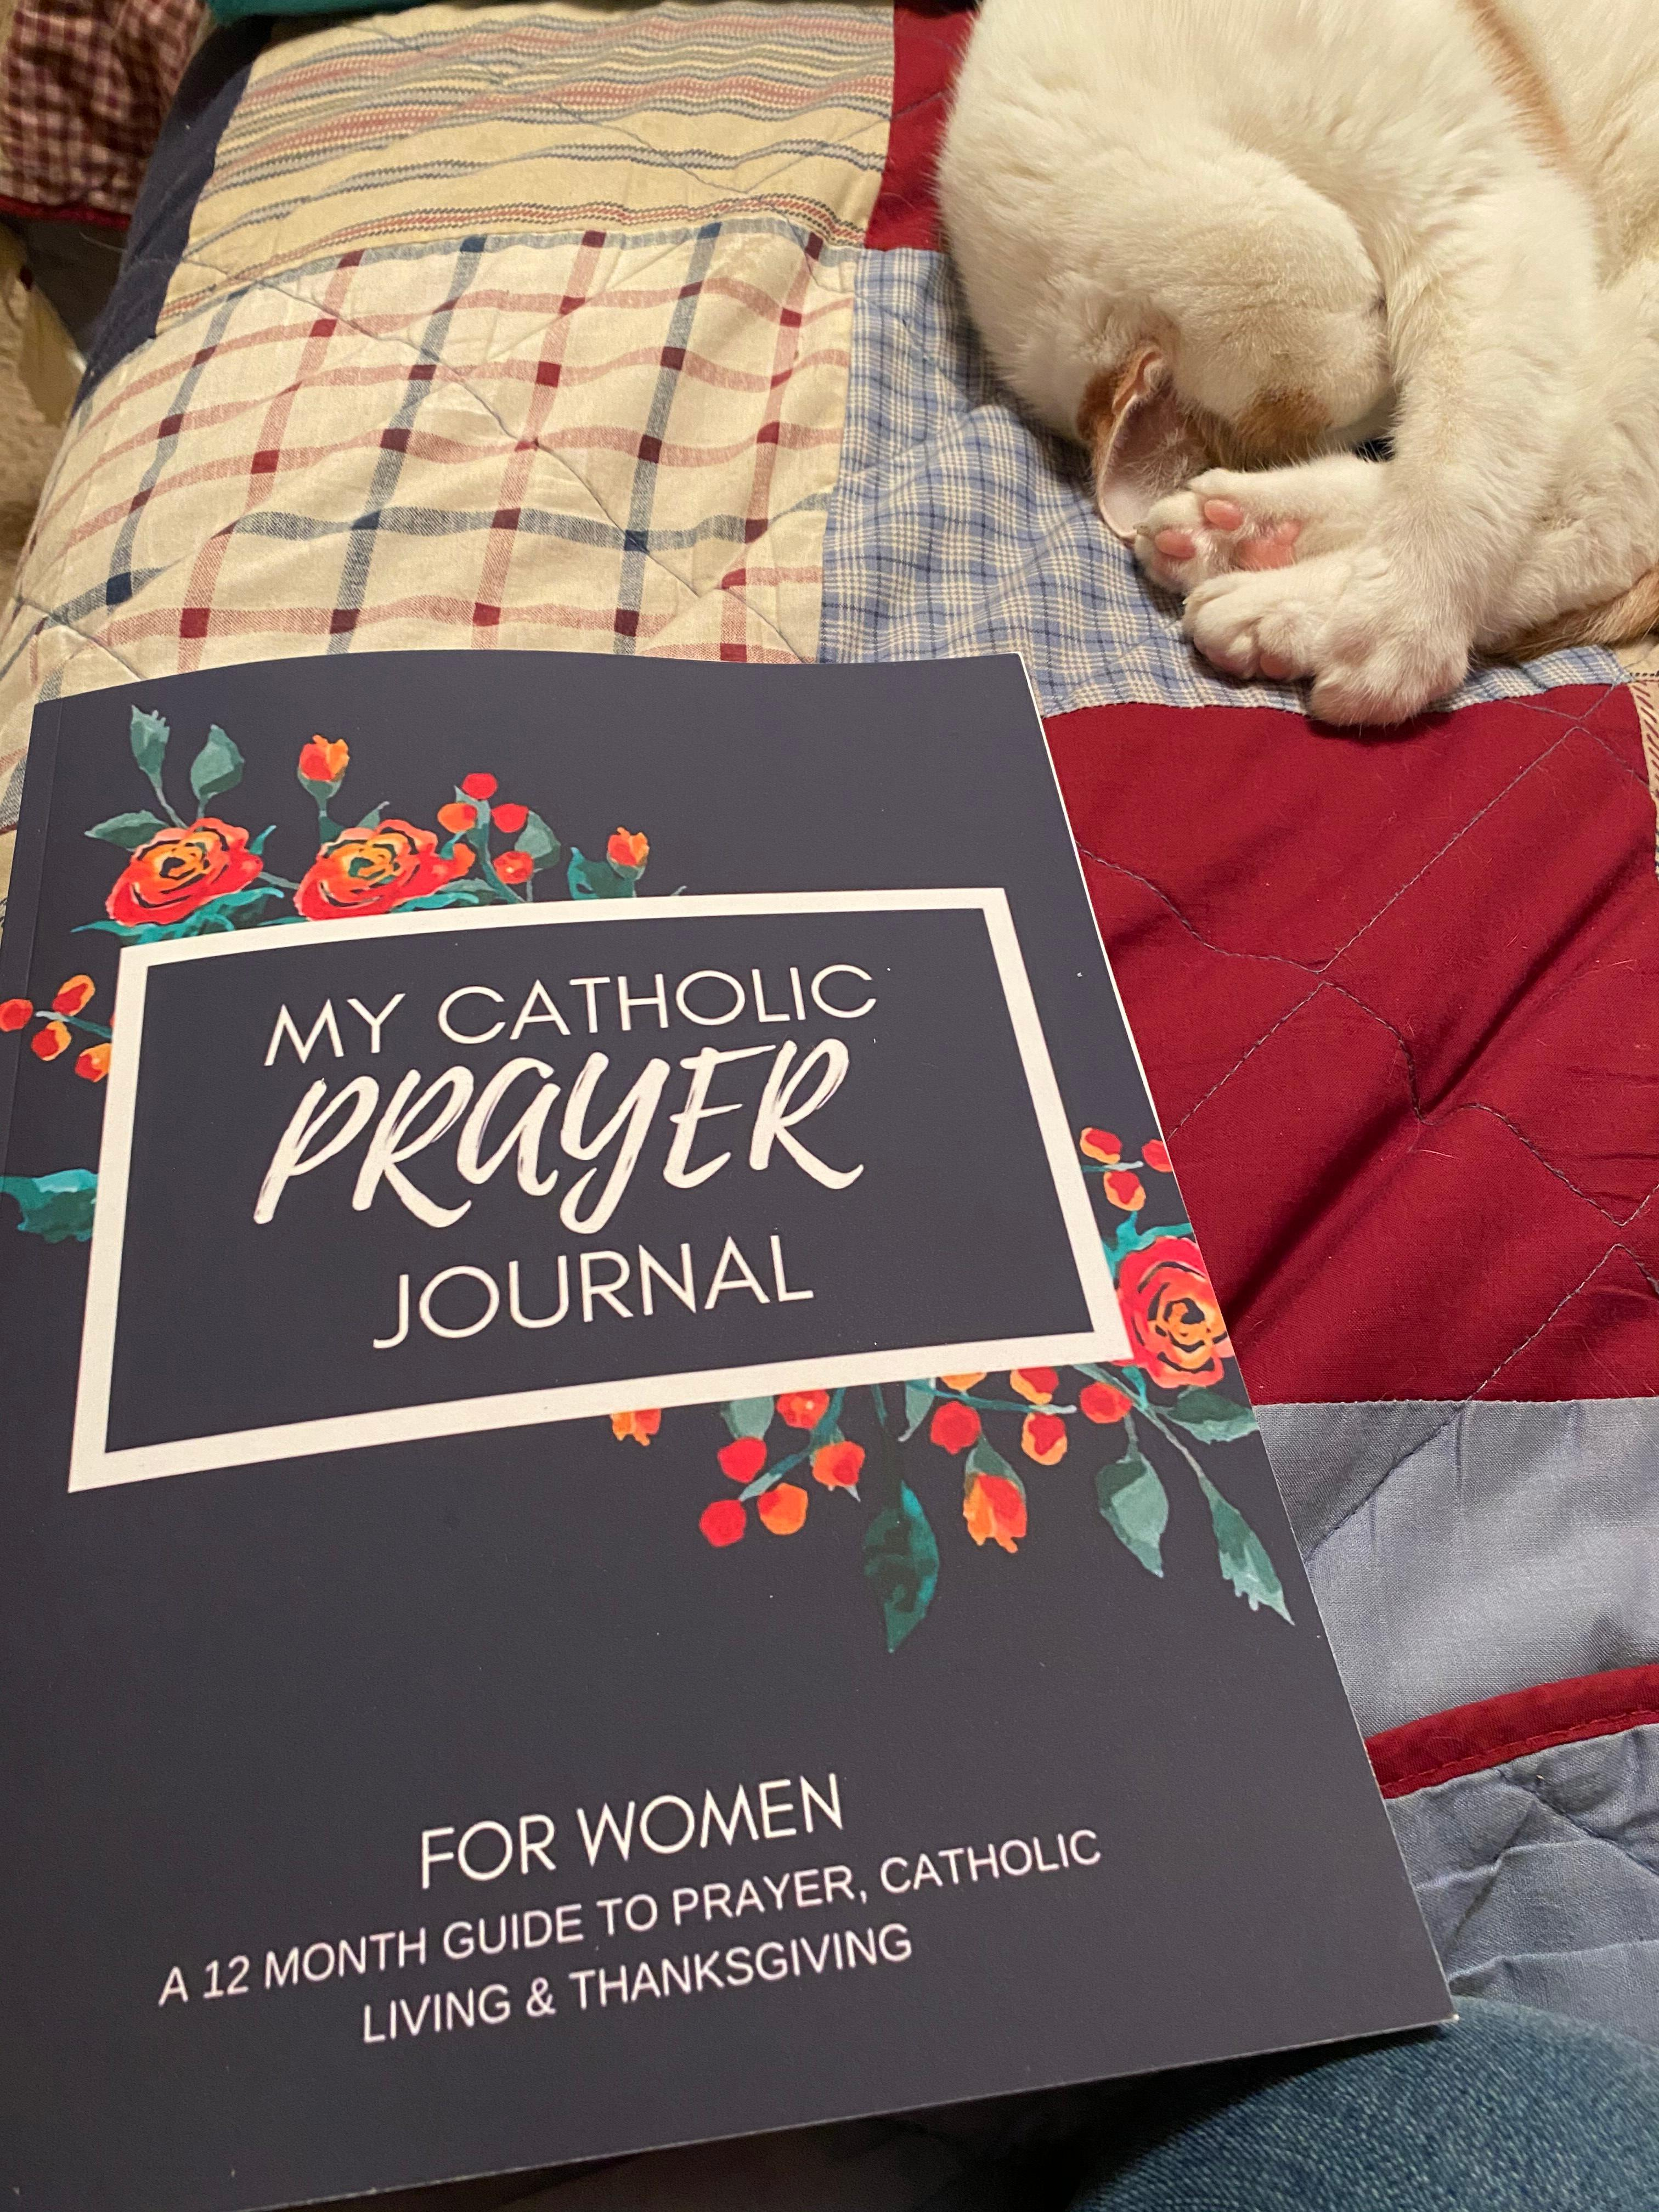 Catholic Prayer Journal for women on red, white, and blue quilt, with white cat sleeping